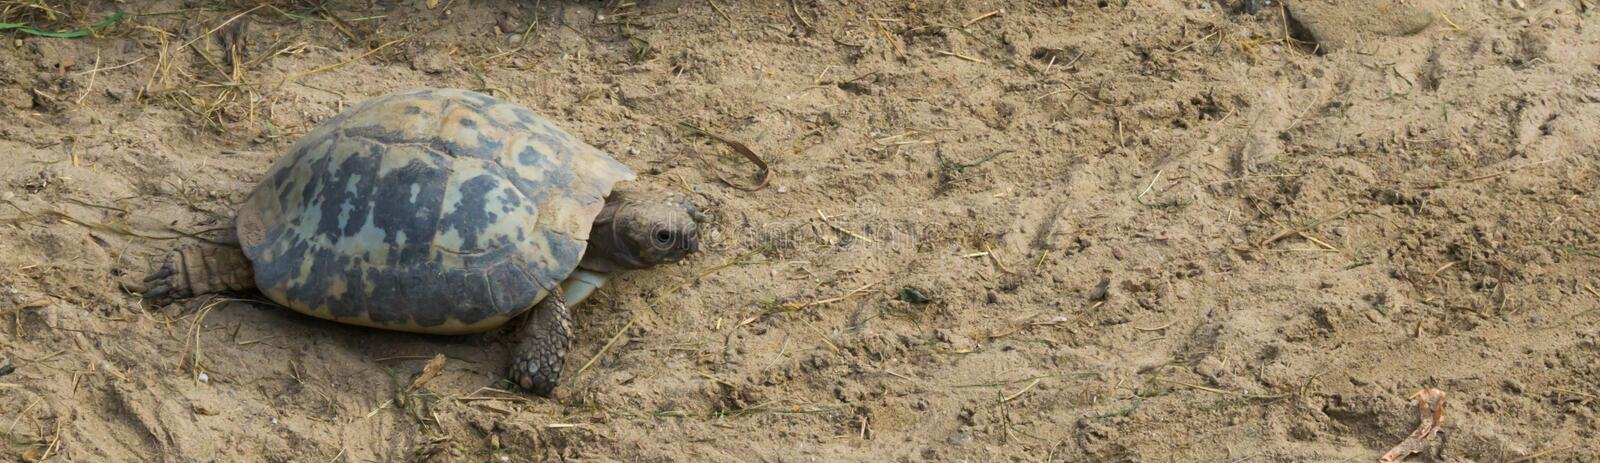 Tortue ovale rampant par le sable à sa propre phase, un animal mis en danger d'Inde photo stock